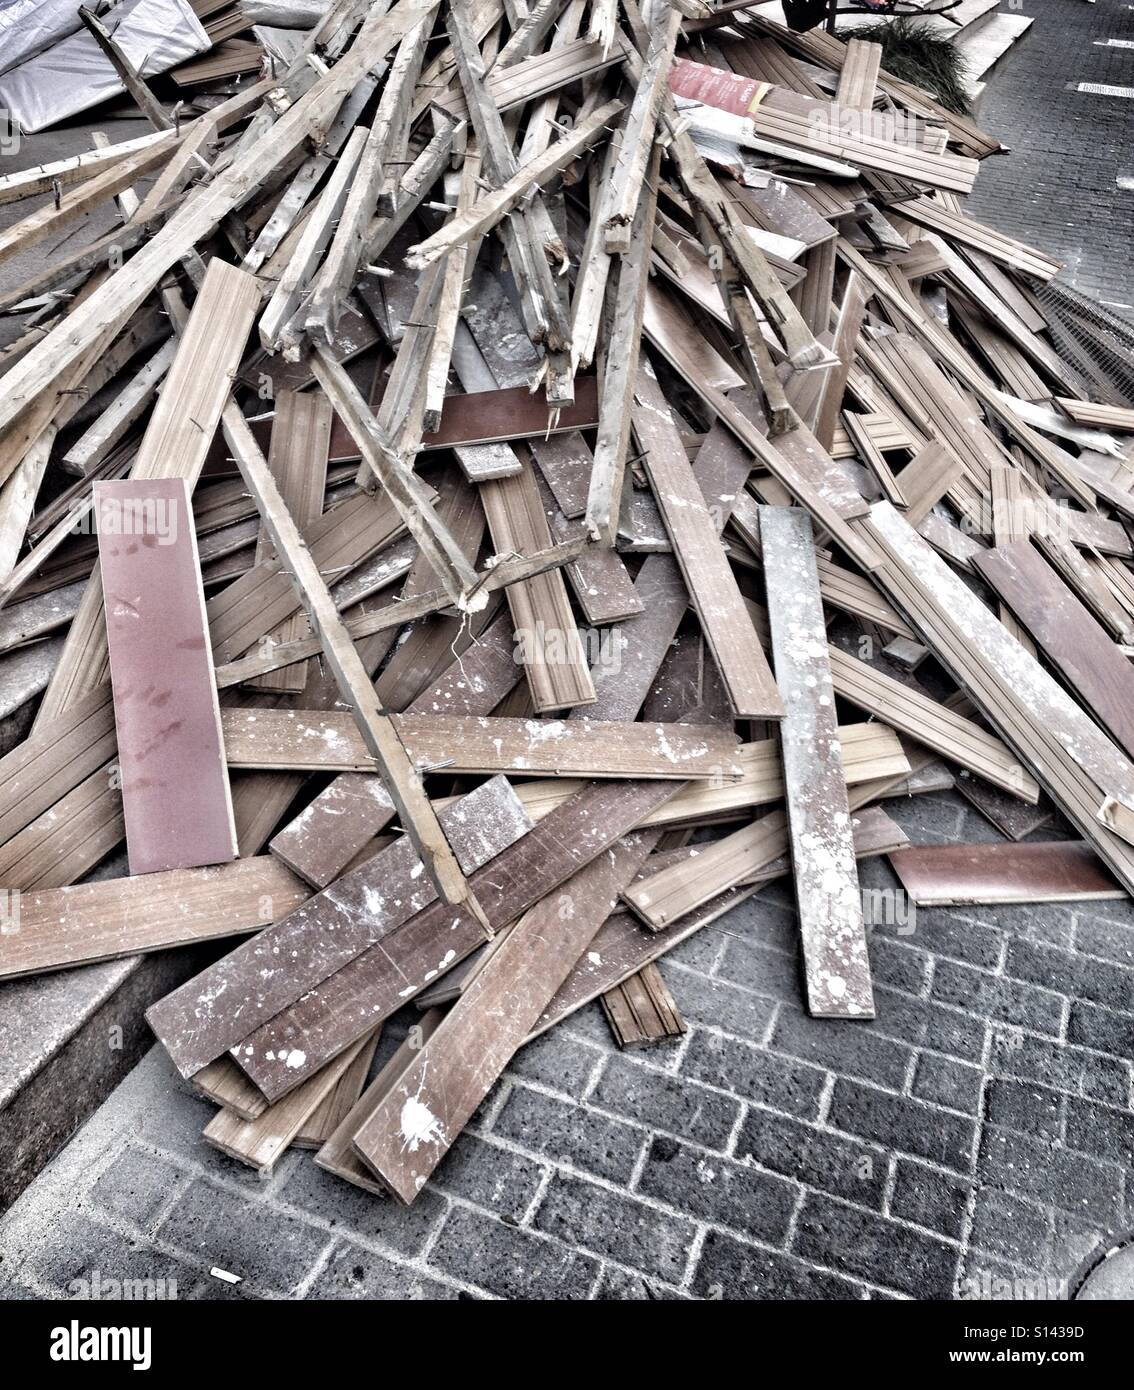 Massive Pile Of Broken Wooden Planks & Wood Blocks At Store Construction Site Lying On The Pavement - Stock Image